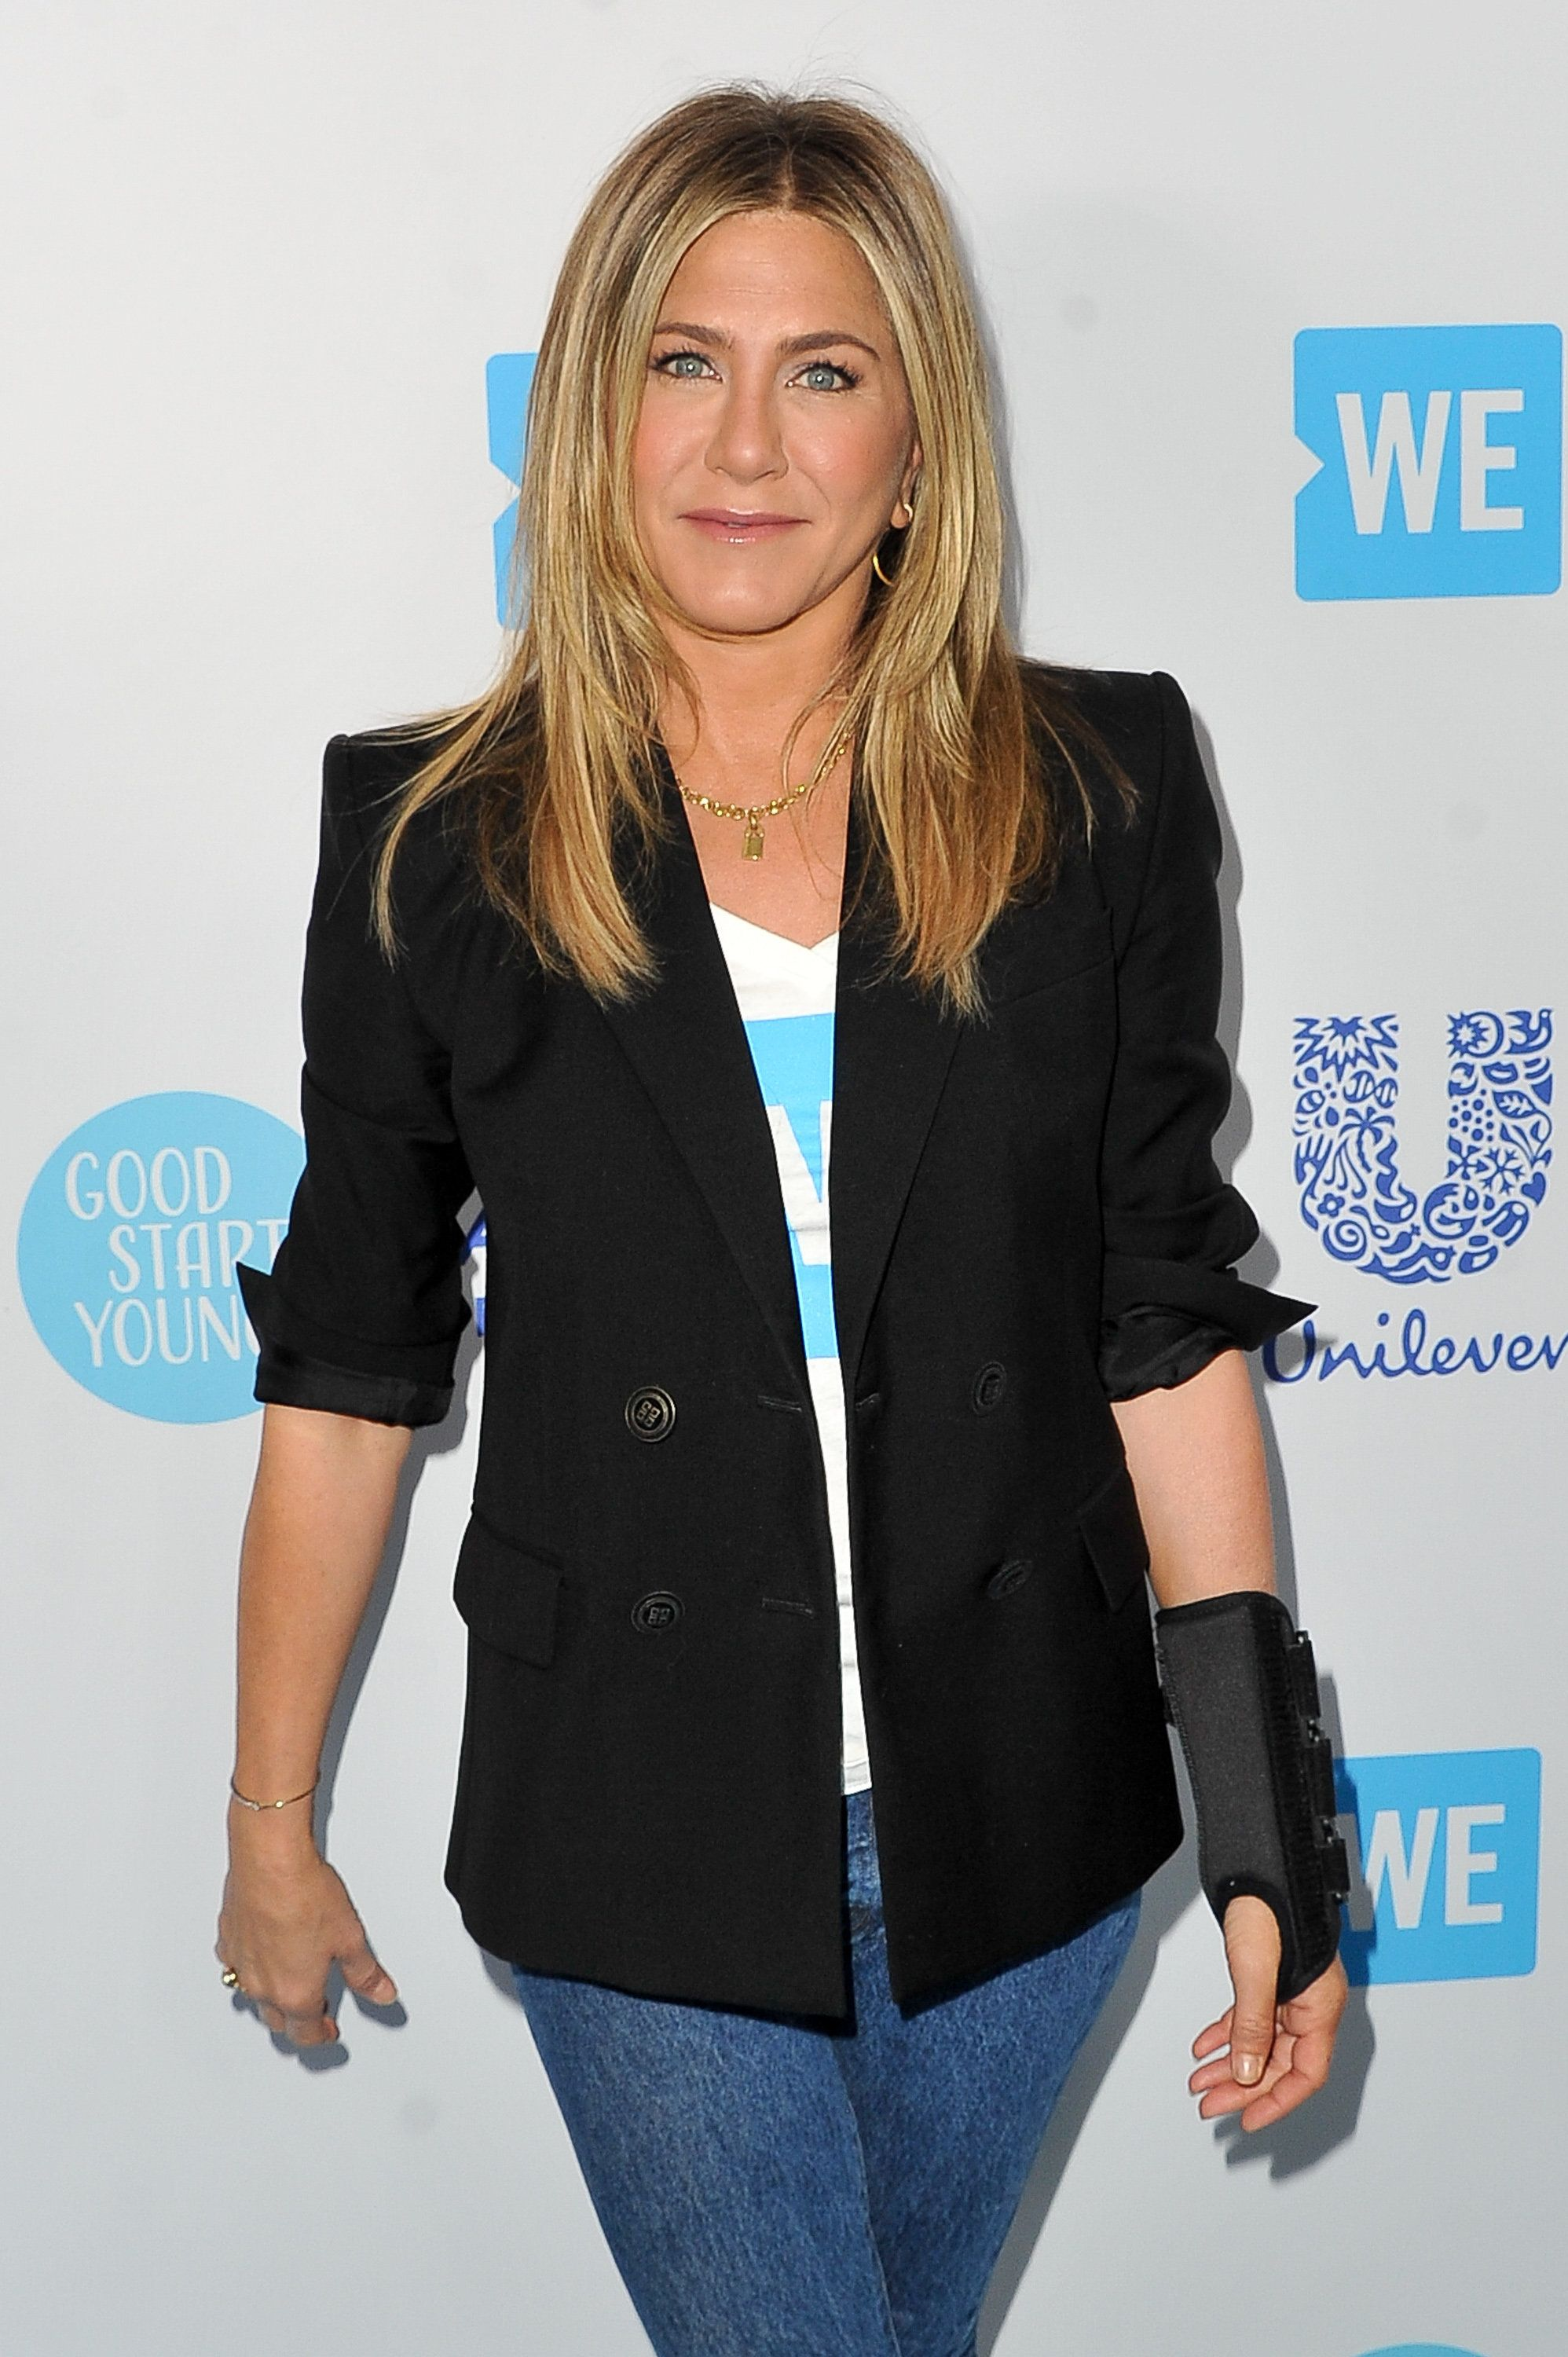 INGLEWOOD, CA - APRIL 19:  Jennifer Aniston attends WE Day California at The Forum on April 19, 2018 in Inglewood, California.  (Photo by Allen Berezovsky/FilmMagic)